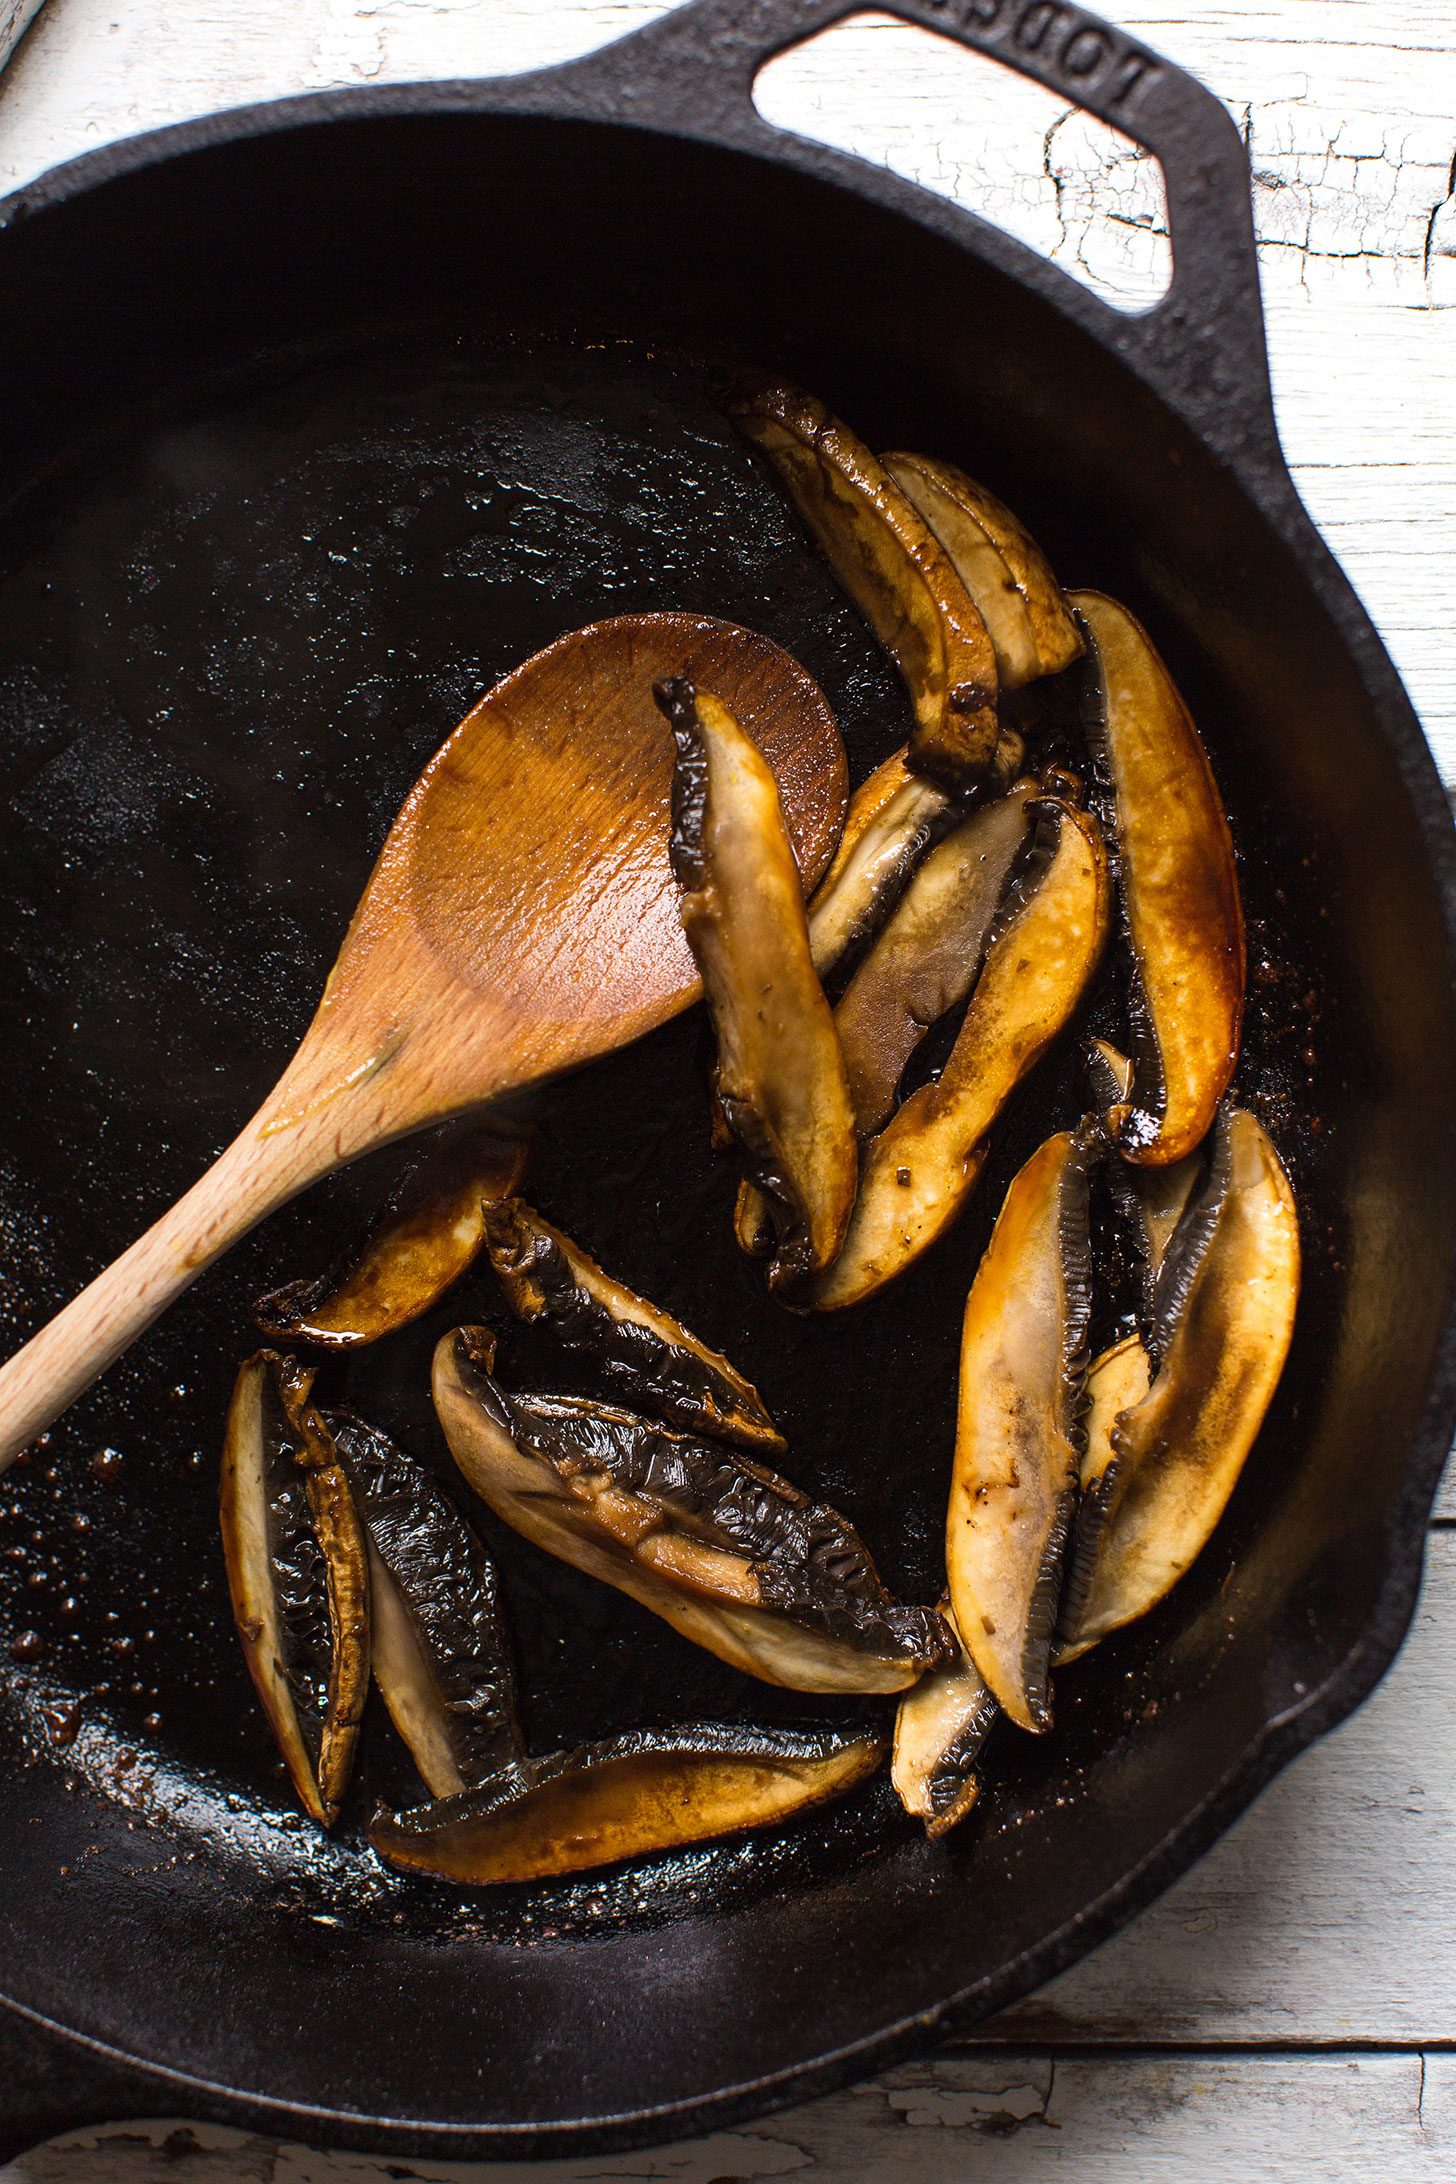 Sautéing mushrooms in a cast-iron skillet for our gluten-free vegan Coconut Curry Ramen recipe